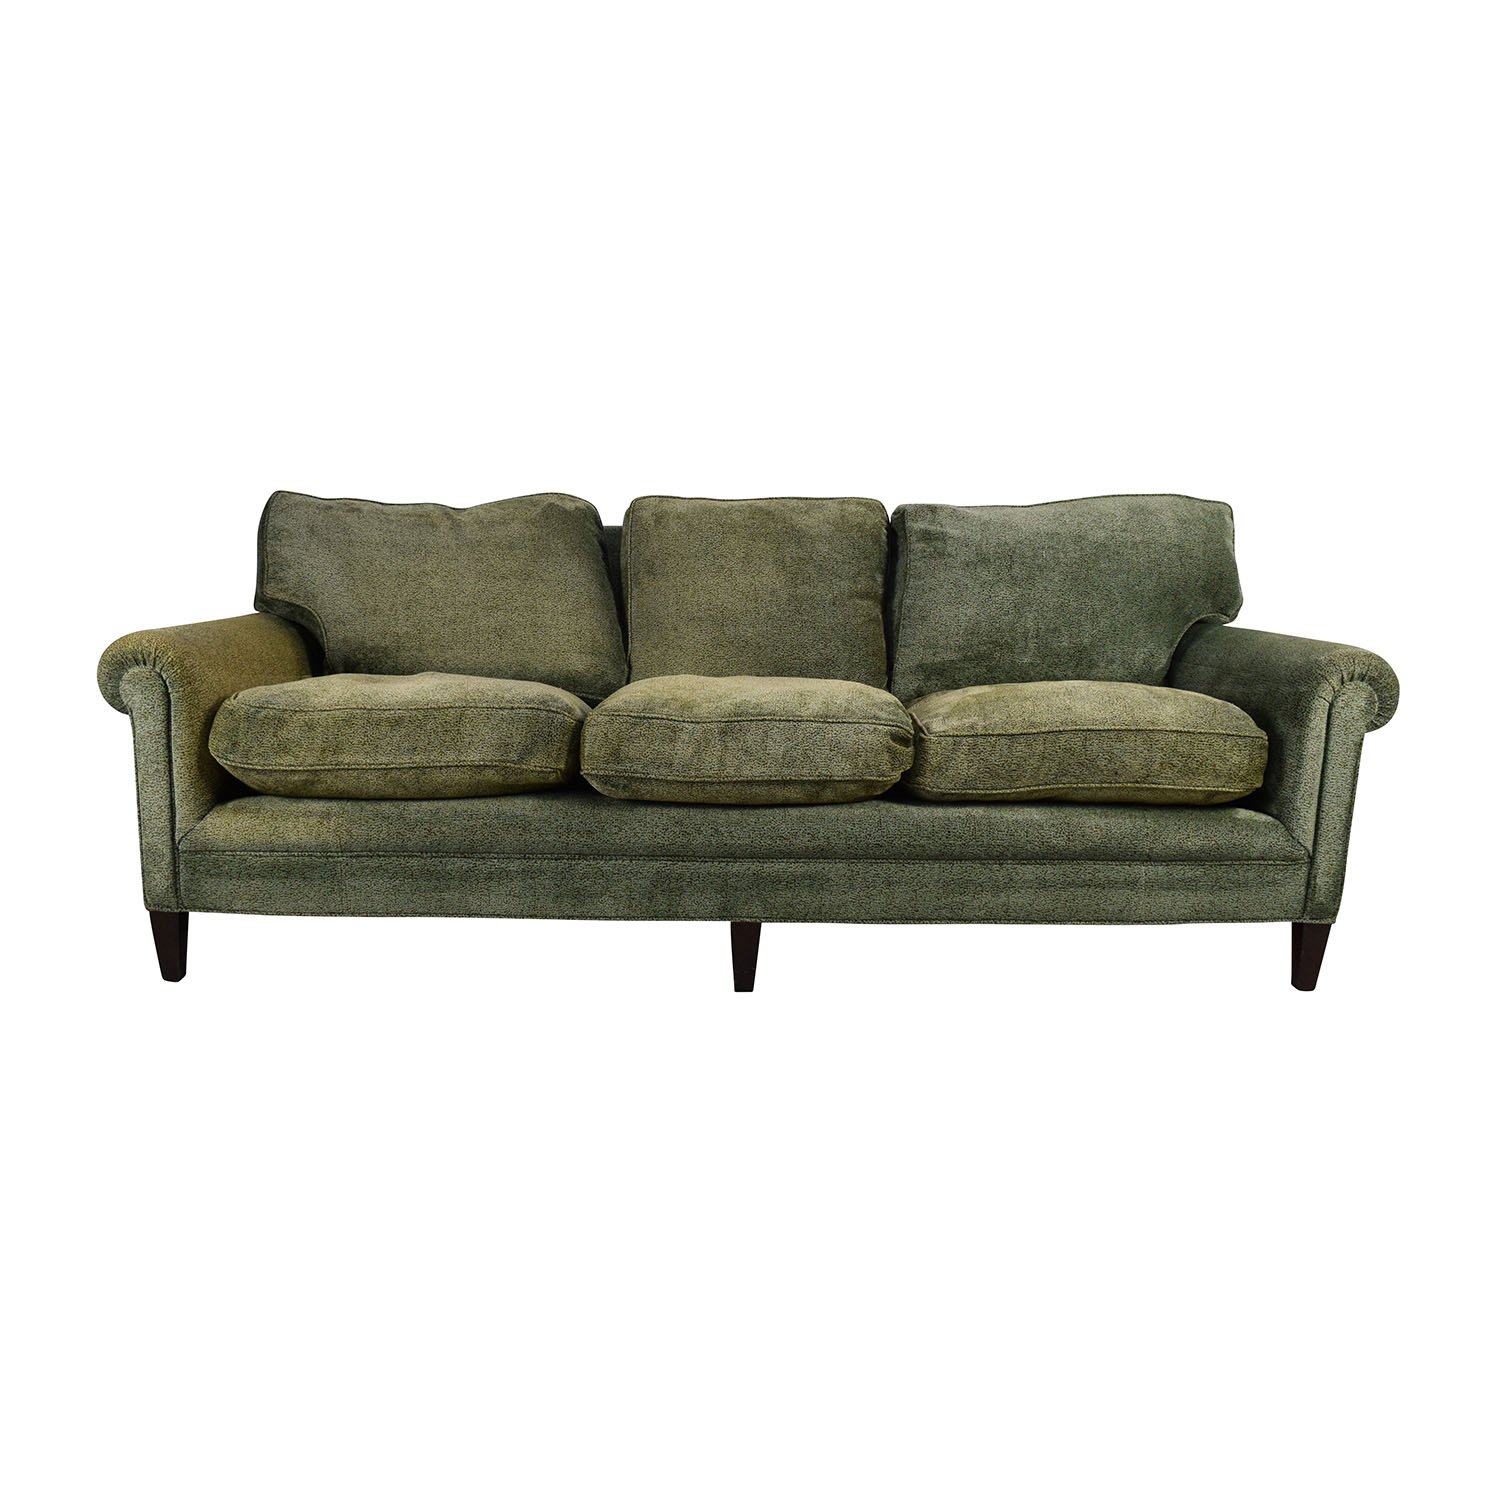 George Smith Clic English Style Sofa Sofas